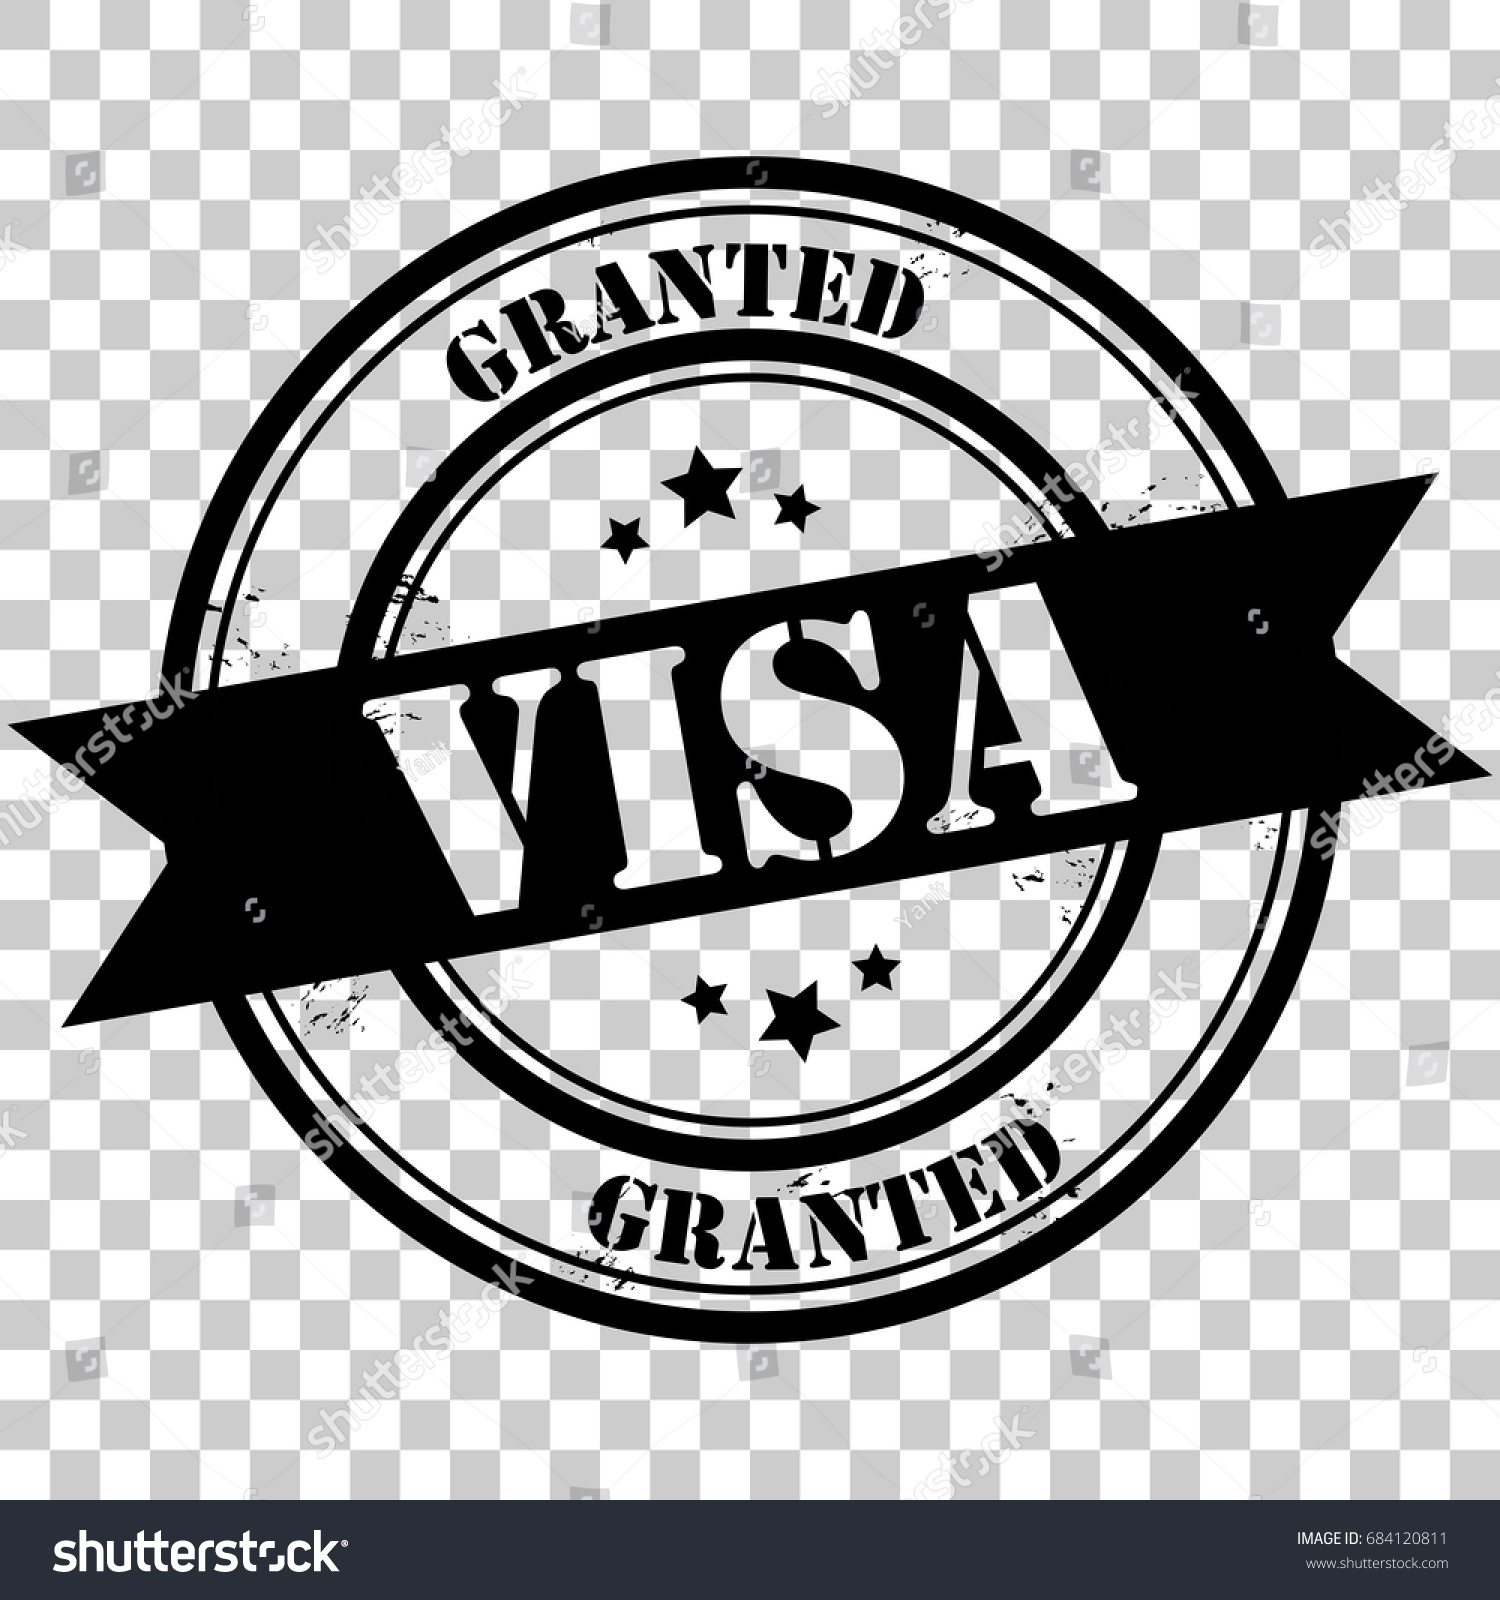 Visa granted rubber stamp icon black stock vector 684120811 visa granted rubber stamp icon black watermark stamp logo with text and stars eps10 biocorpaavc Choice Image